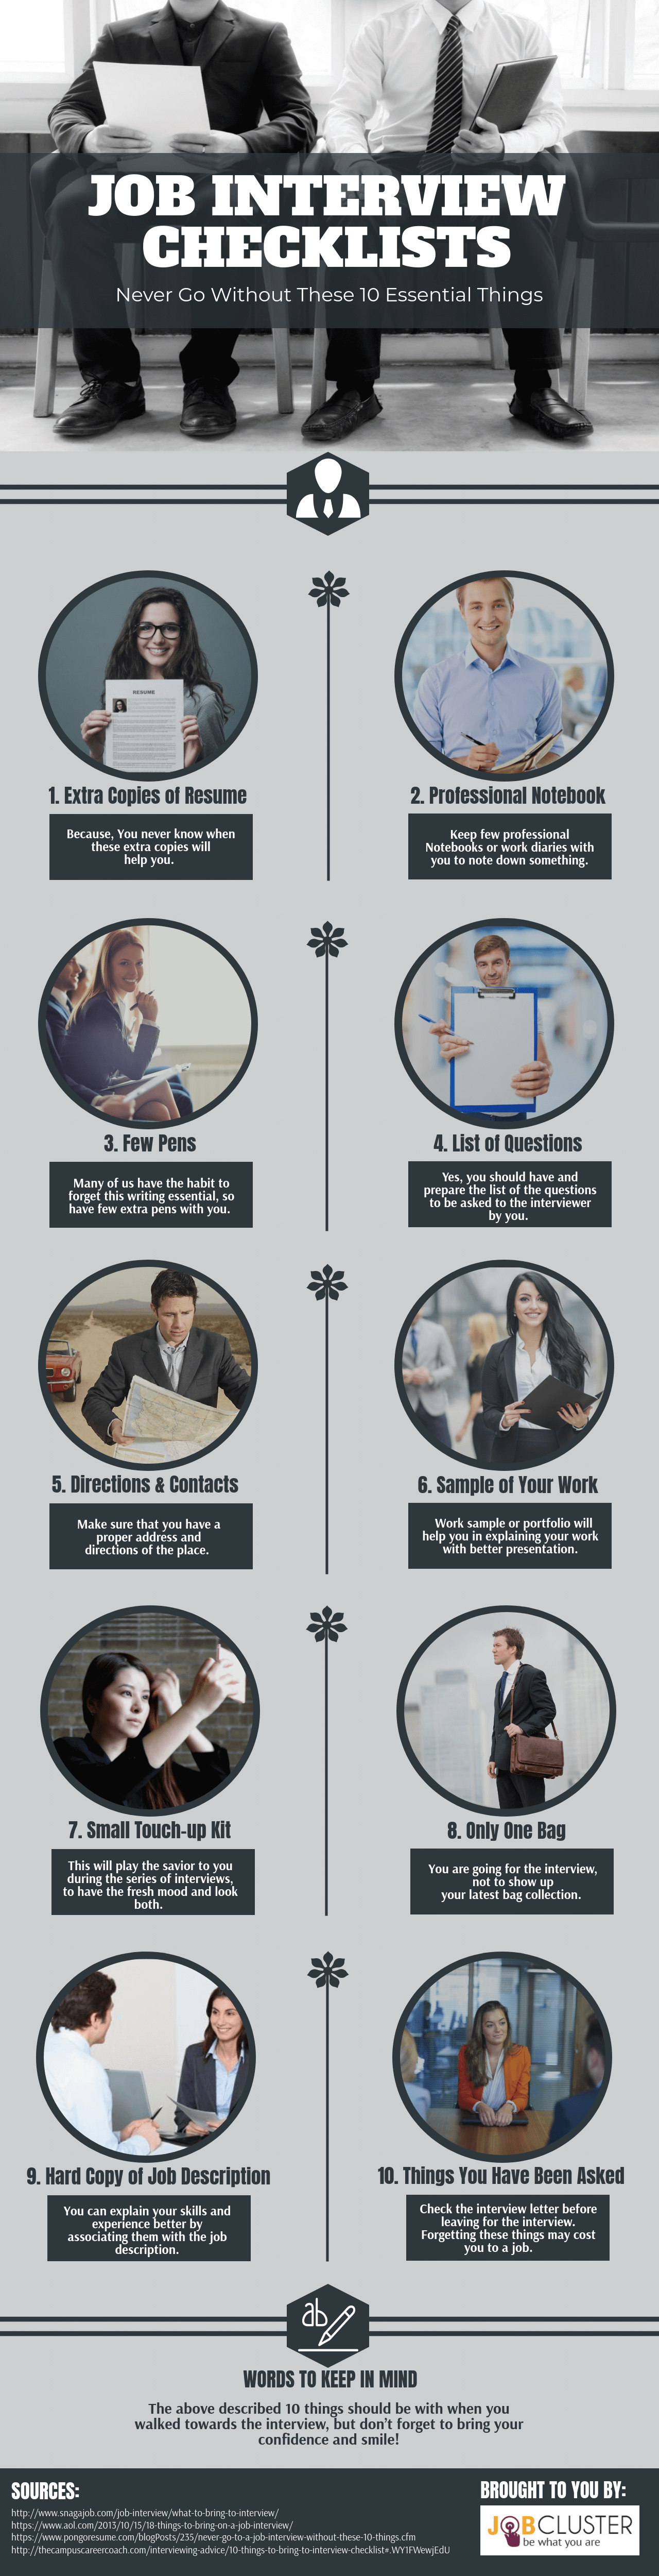 10 Important Things To Carry For The Job Interview